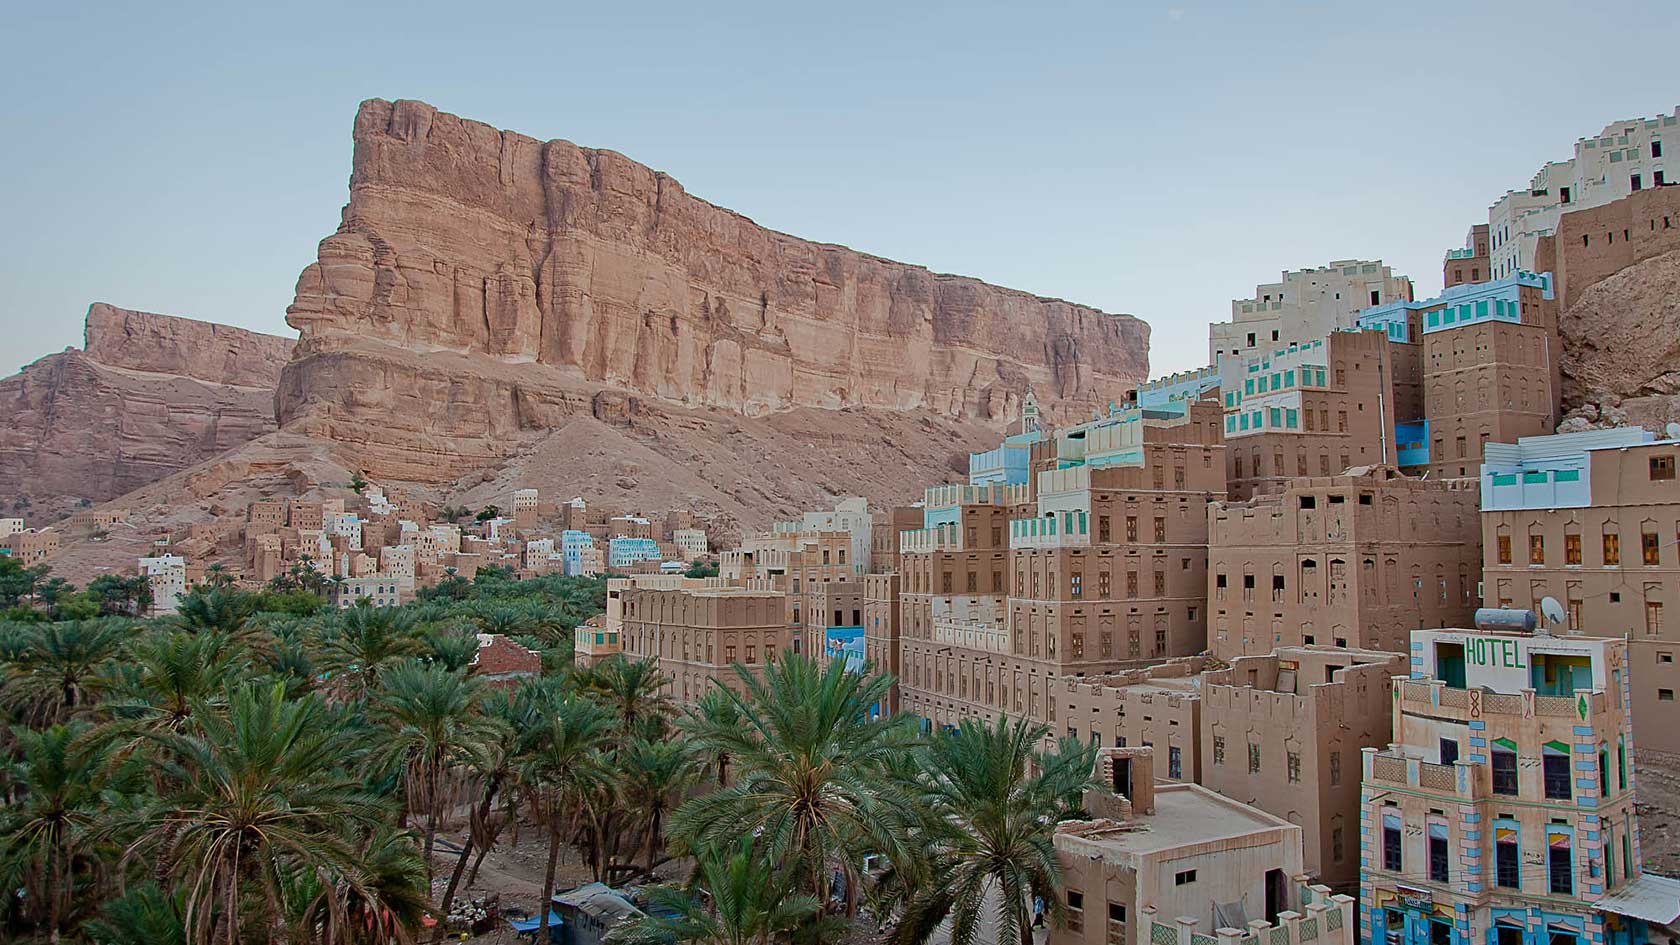 Yemeni Old Civilizations